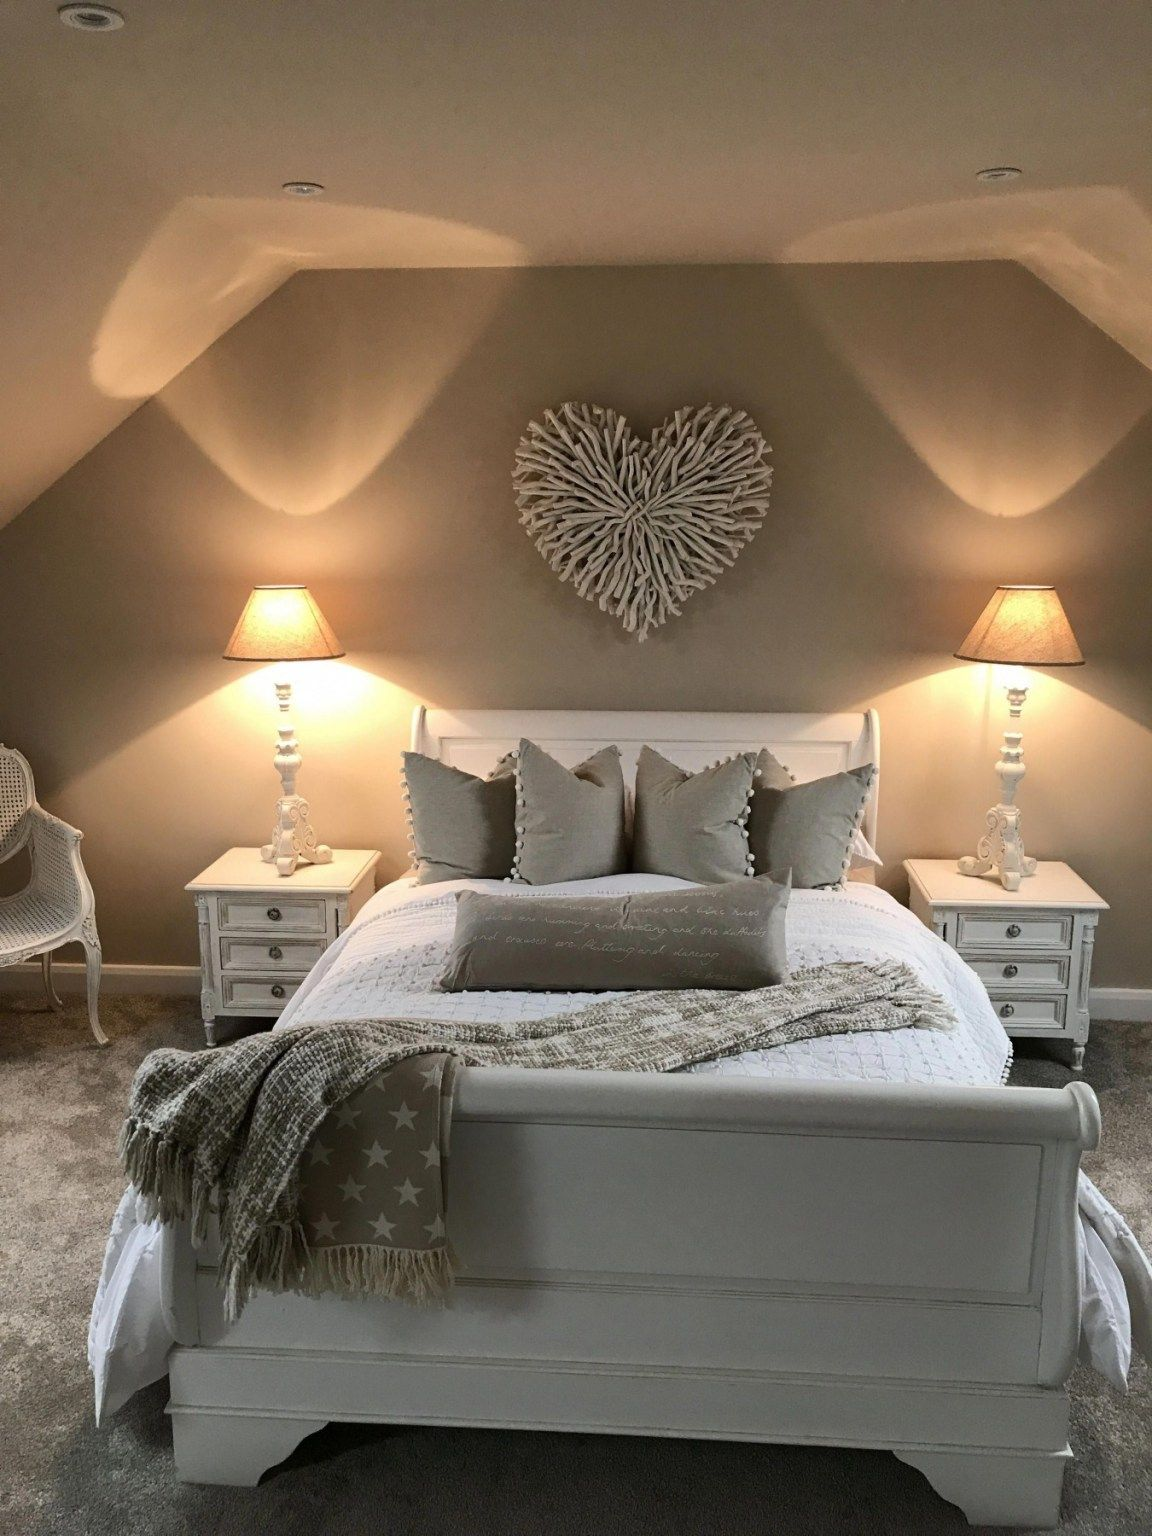 40+ Gorgeous Small Master Bedroom Ideas In 2021 [Decor Inspirations]   Home decor bedroom, Home ...